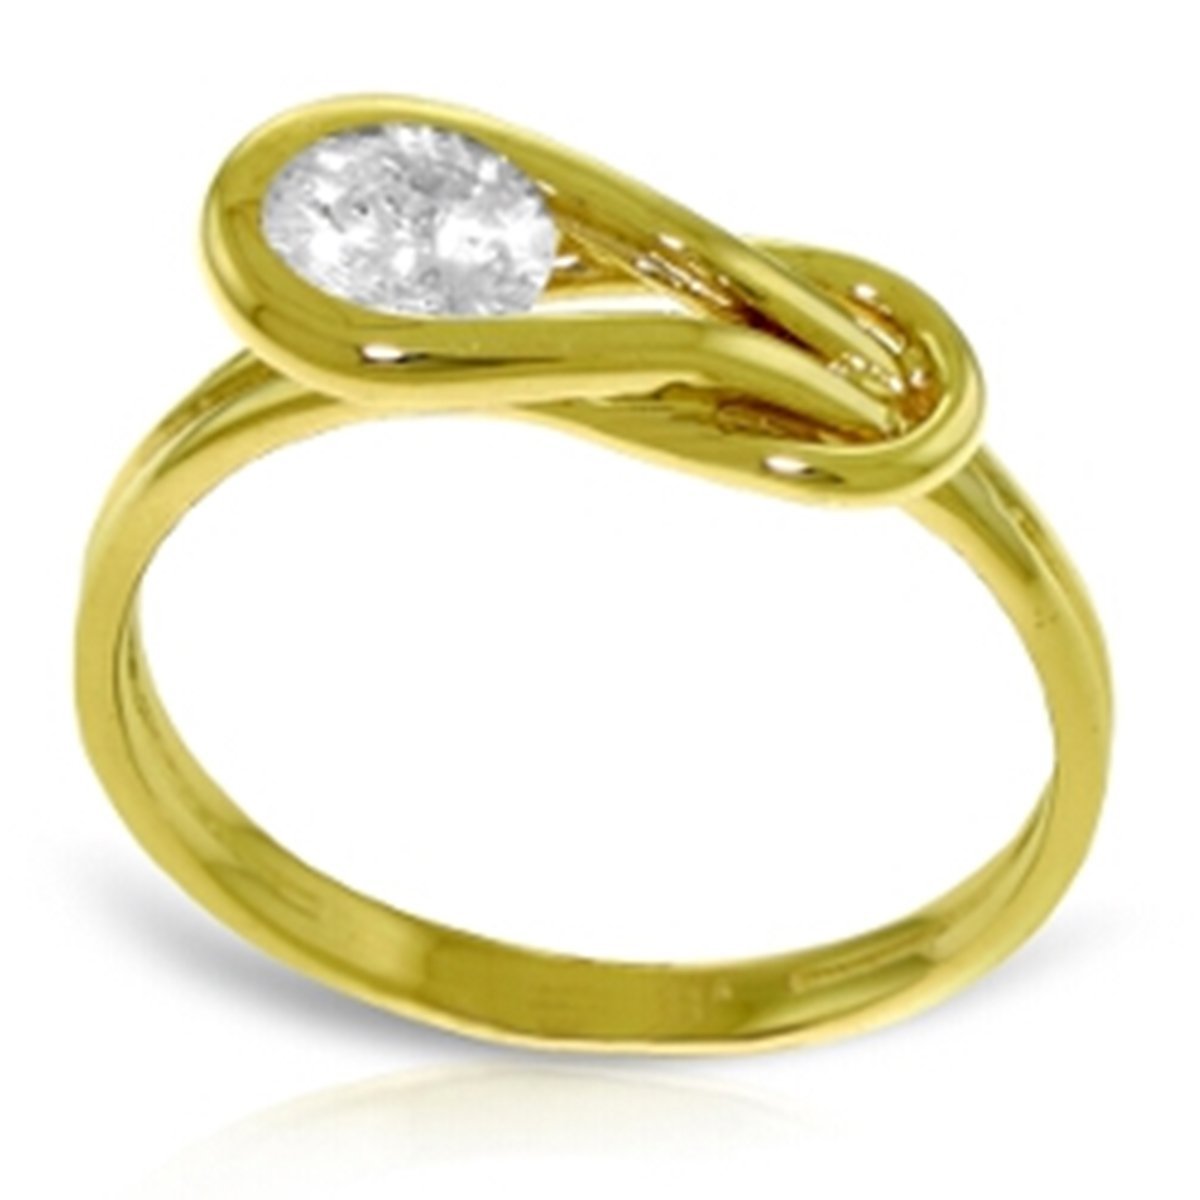 14K Solid Yellow Gold Love Knot Ring 0.50 Carat Natural Diamond 4211-Y